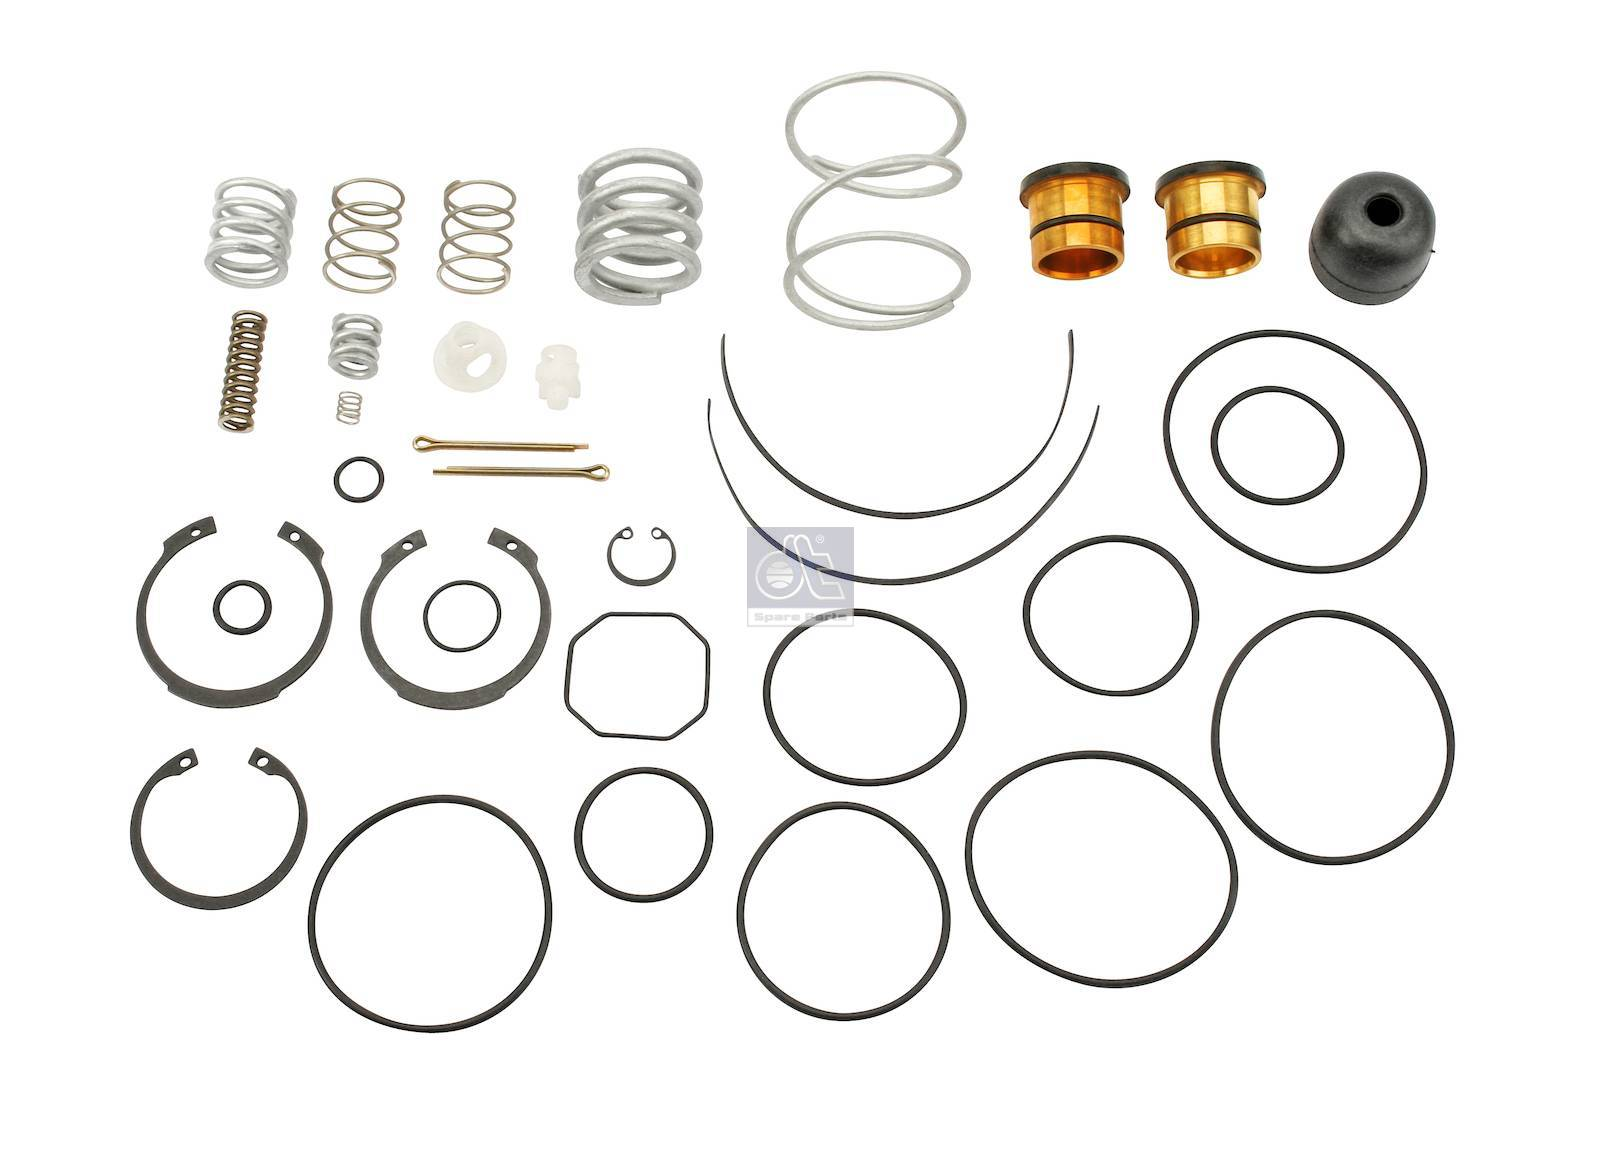 Repair kit, foot brake valve